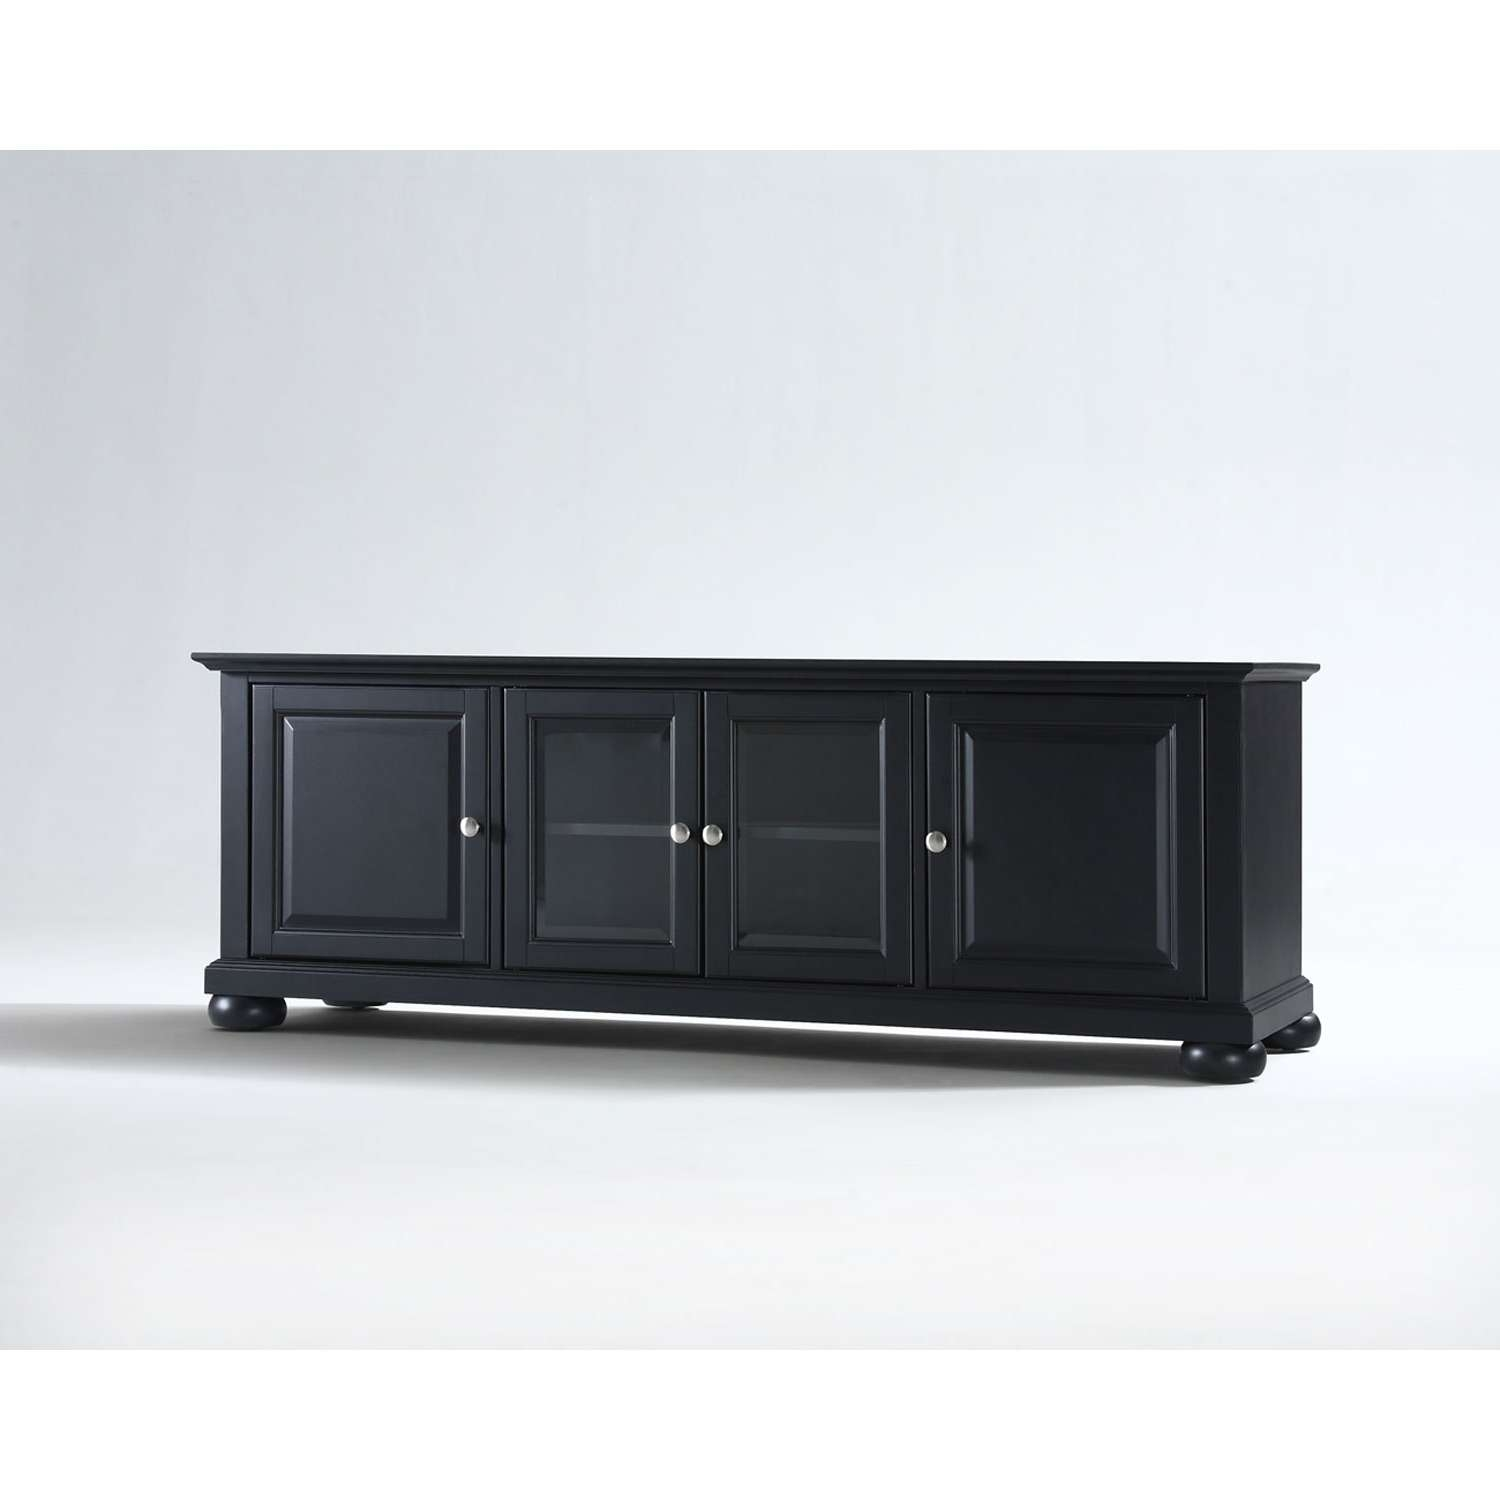 Tv Stands & Cabinets On Sale | Bellacor Intended For Country Style Tv Cabinets (View 18 of 20)